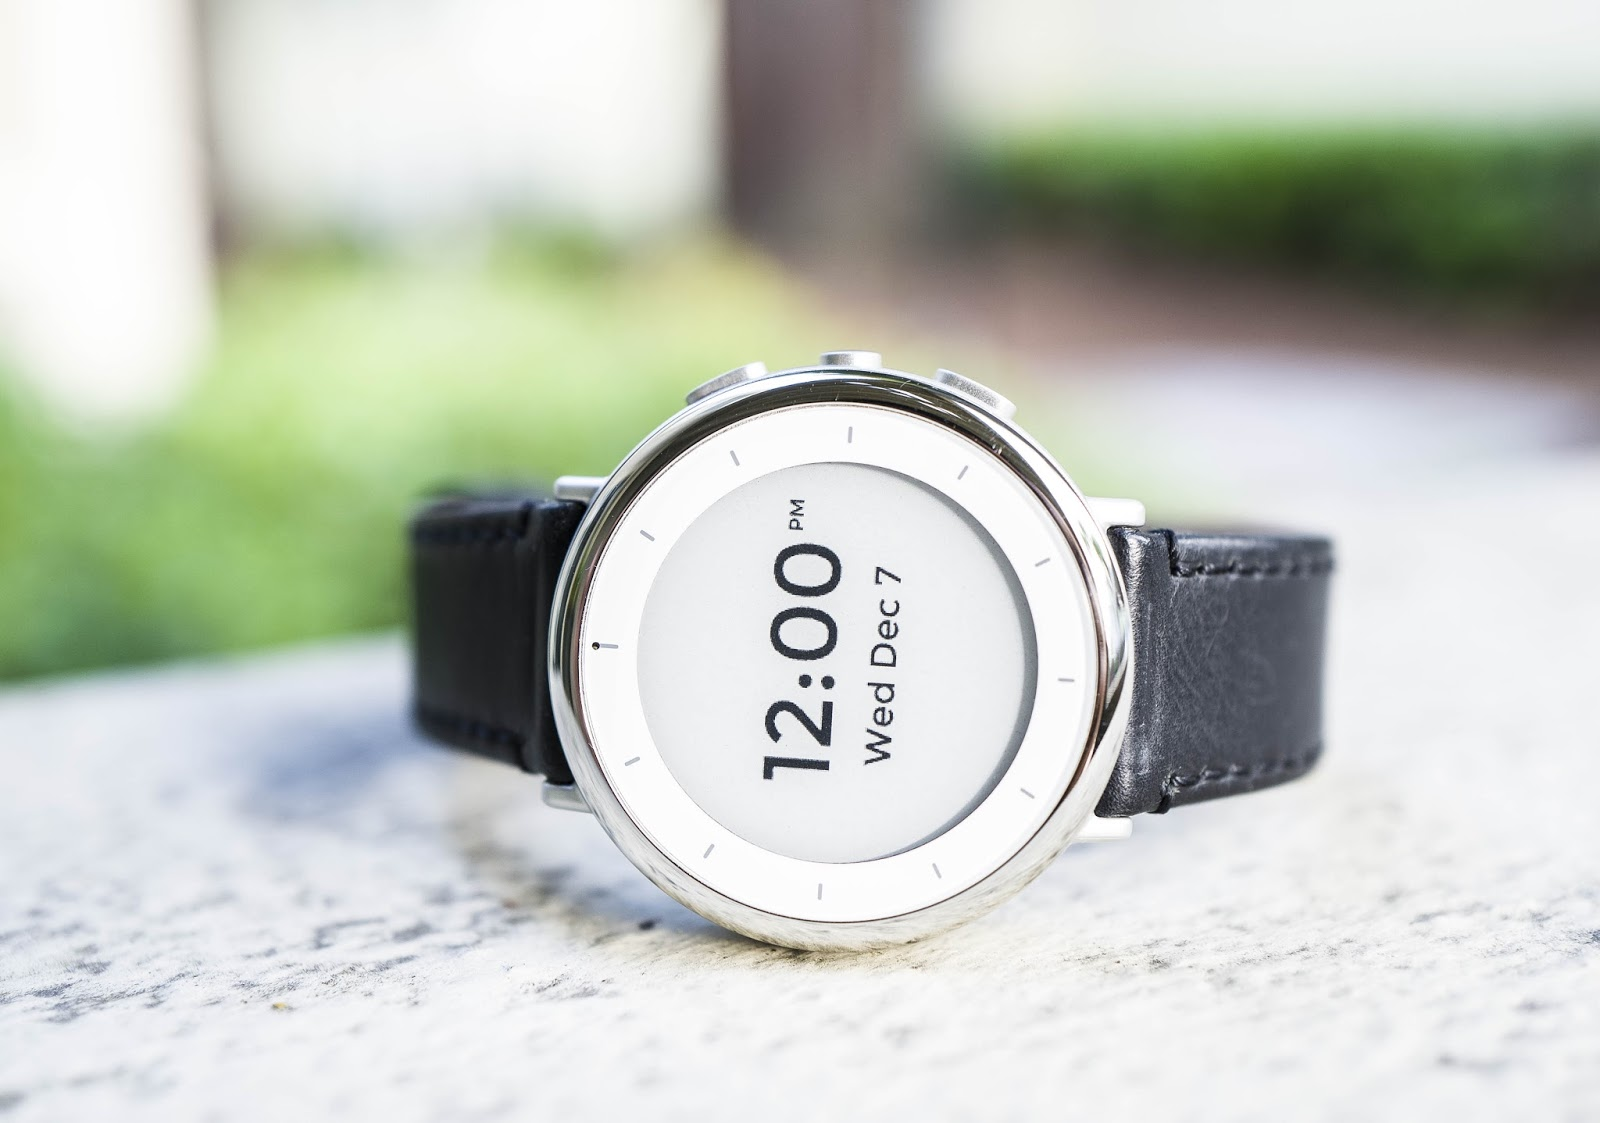 This smartwatch isn't for sale, but it could help with life-saving research.